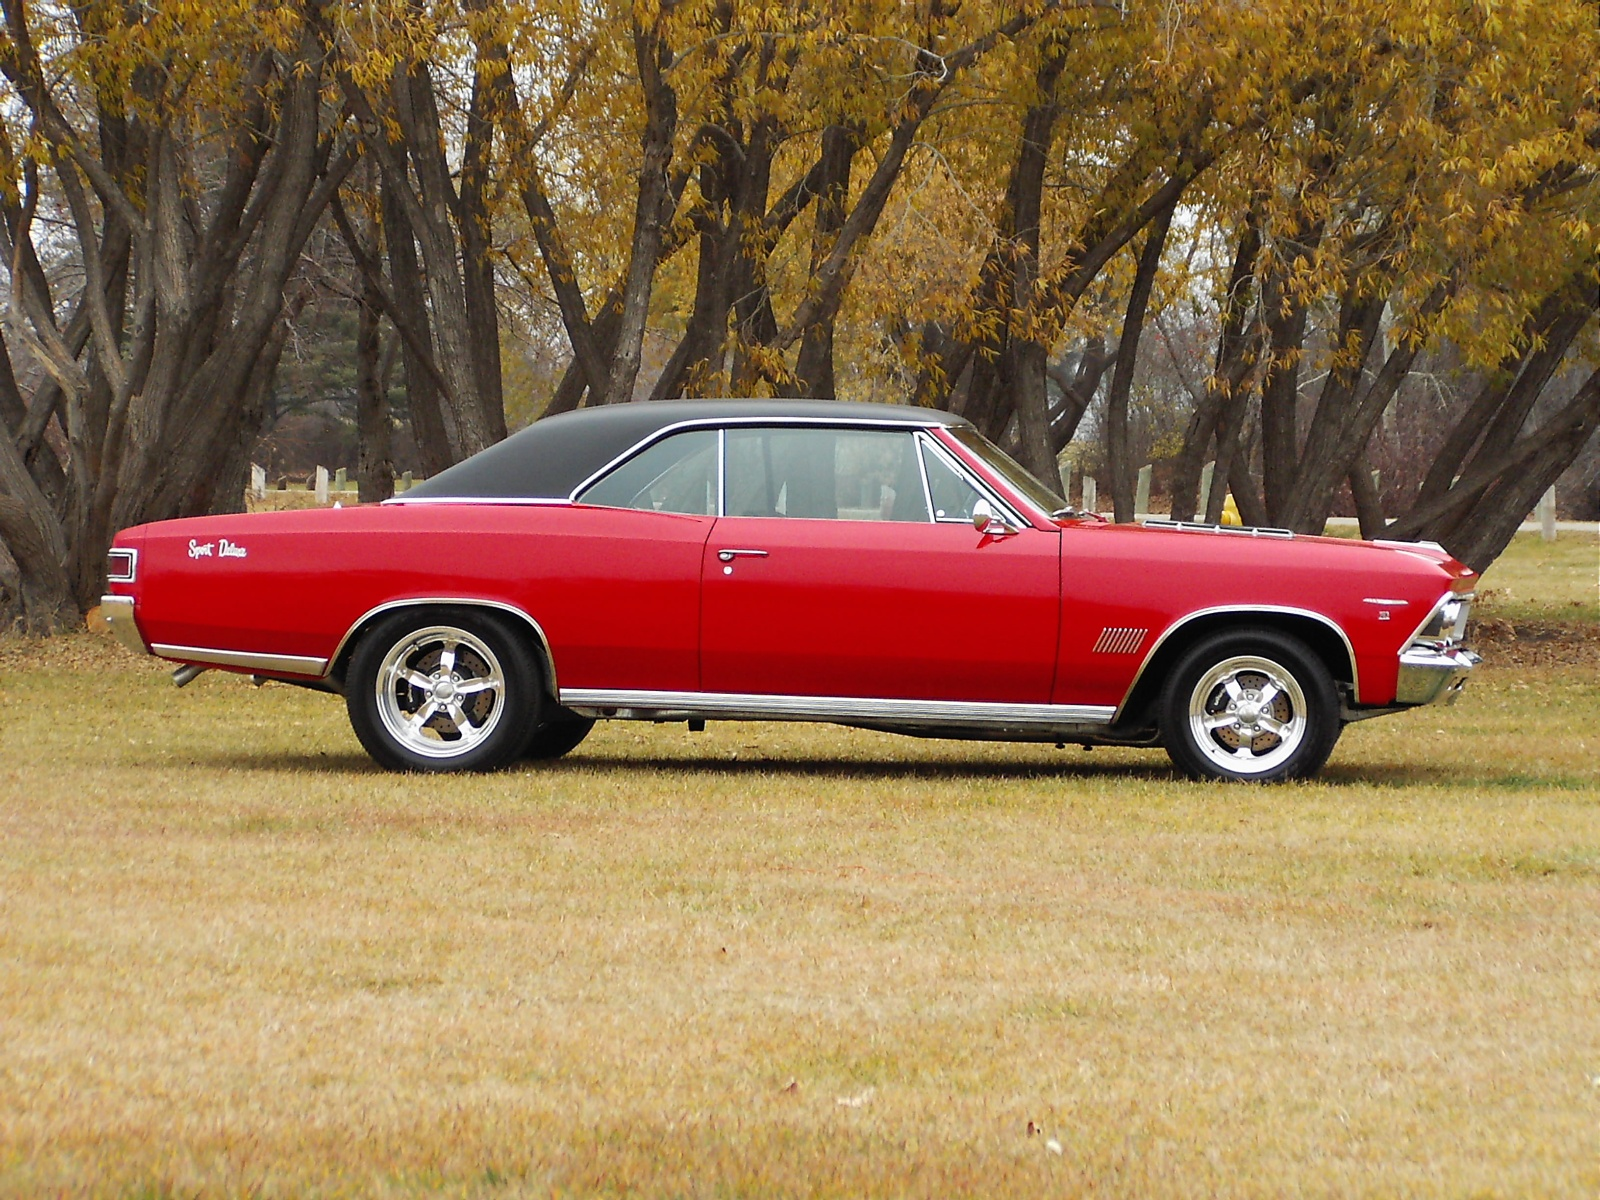 1971 Chevrolet Chevelle - Pictures - CarGurus 1967 chevelle pictures and videos